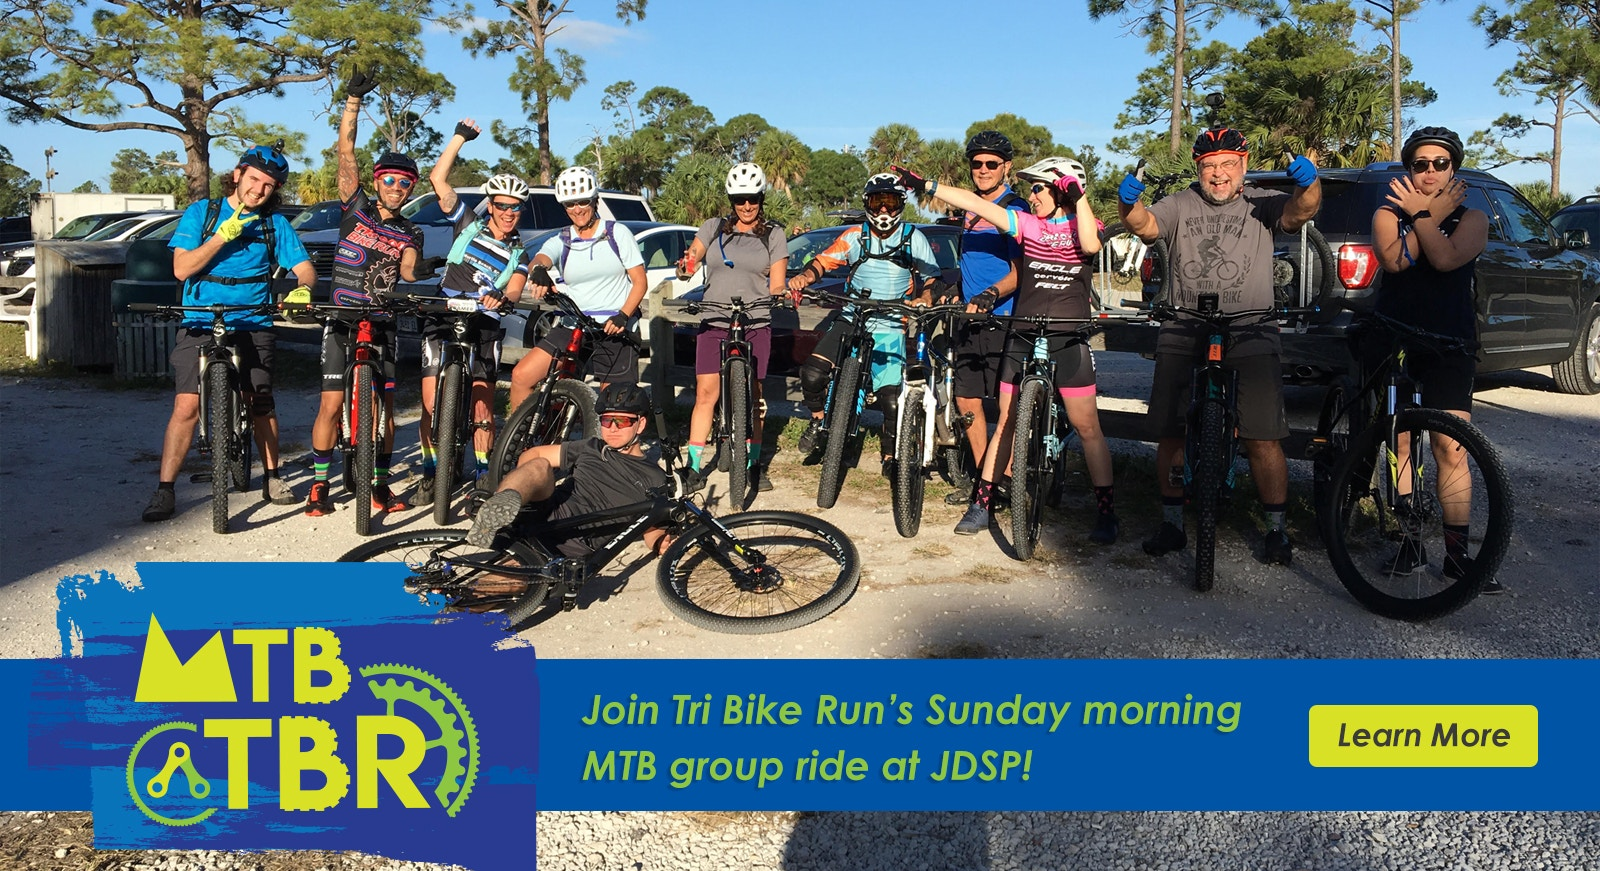 TBR MTB Group Ride